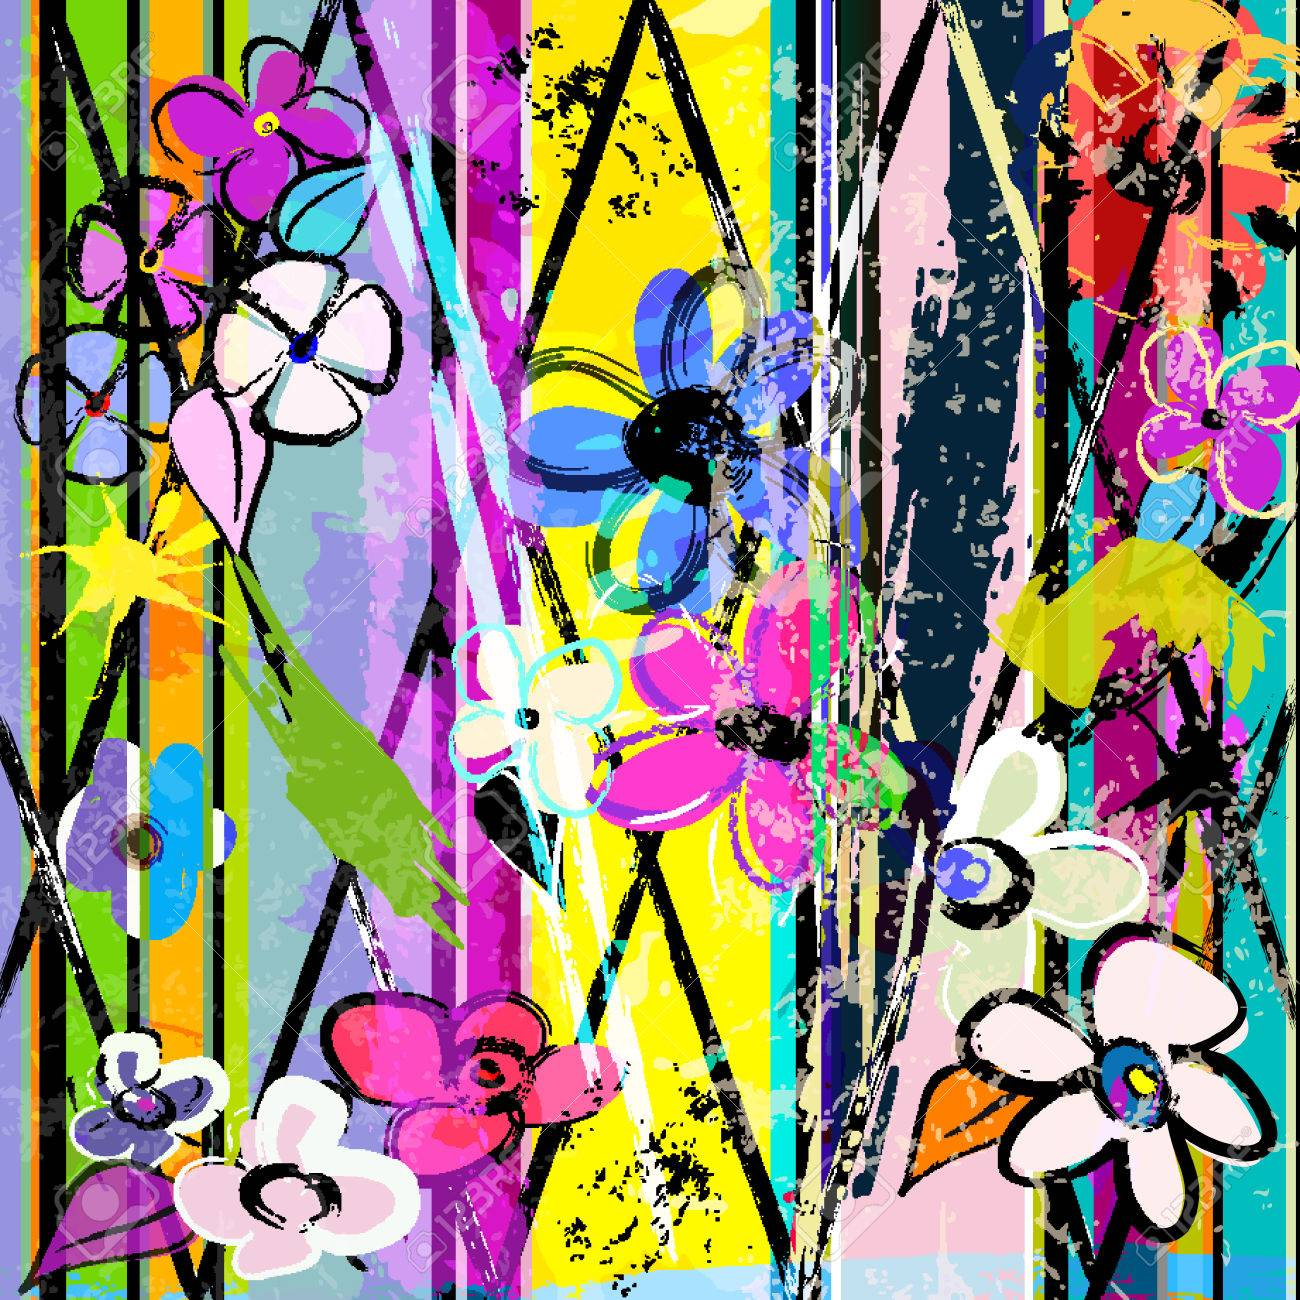 abstract background, with paint strokes, splashes and little flowers - 55304301